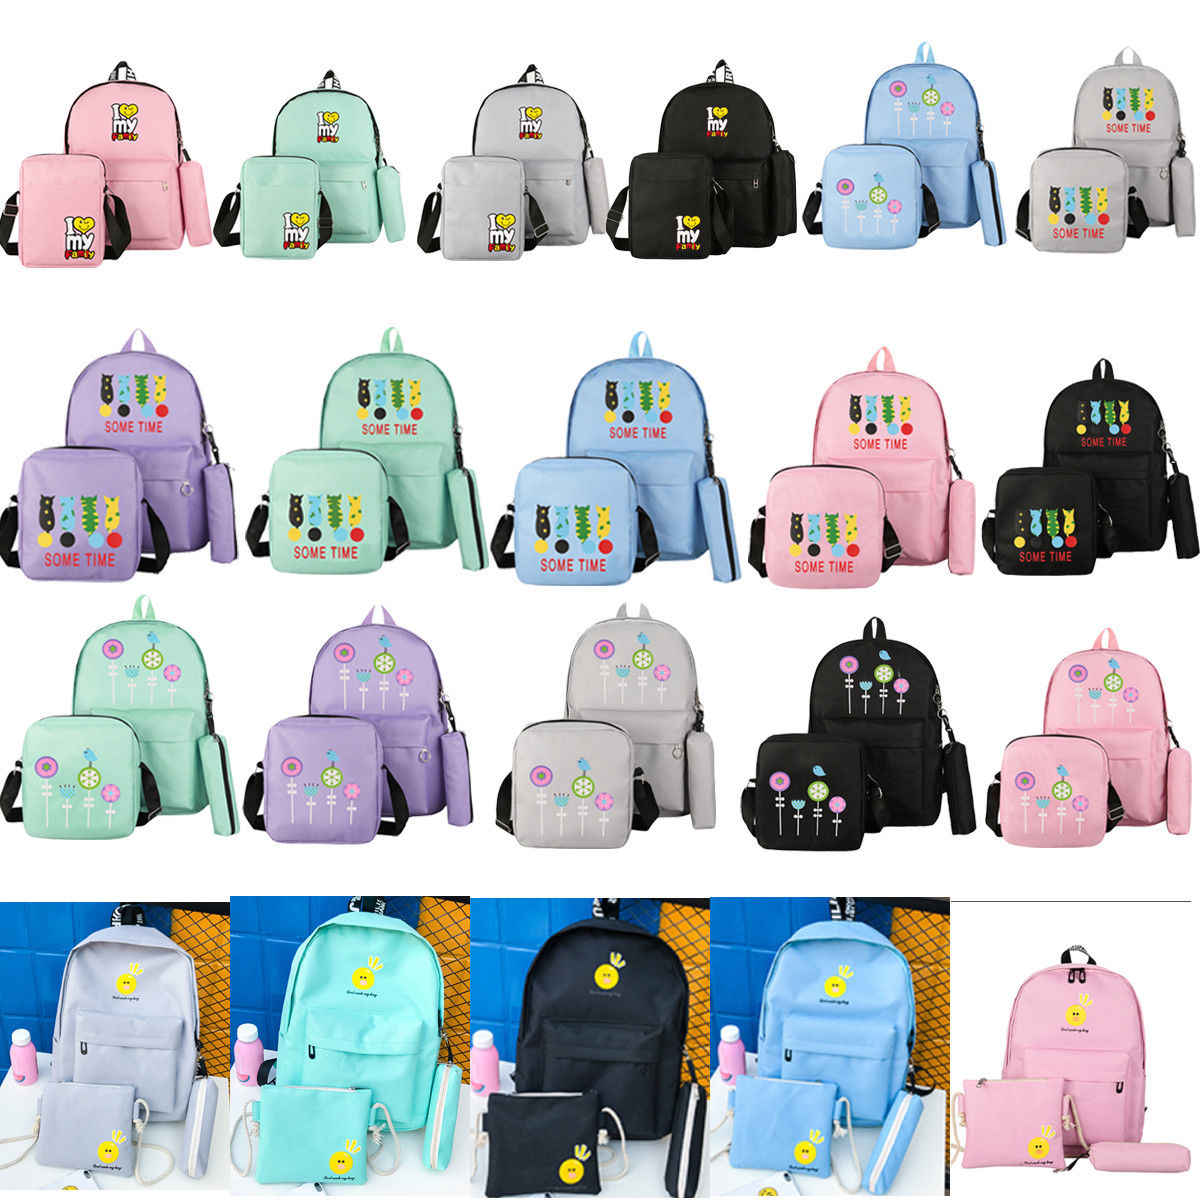 38b952427 Women Canvas Backpack Travel Bags School Bags For Students 3PCS Backpack  Sets Cartoon Lady Girls Backpack